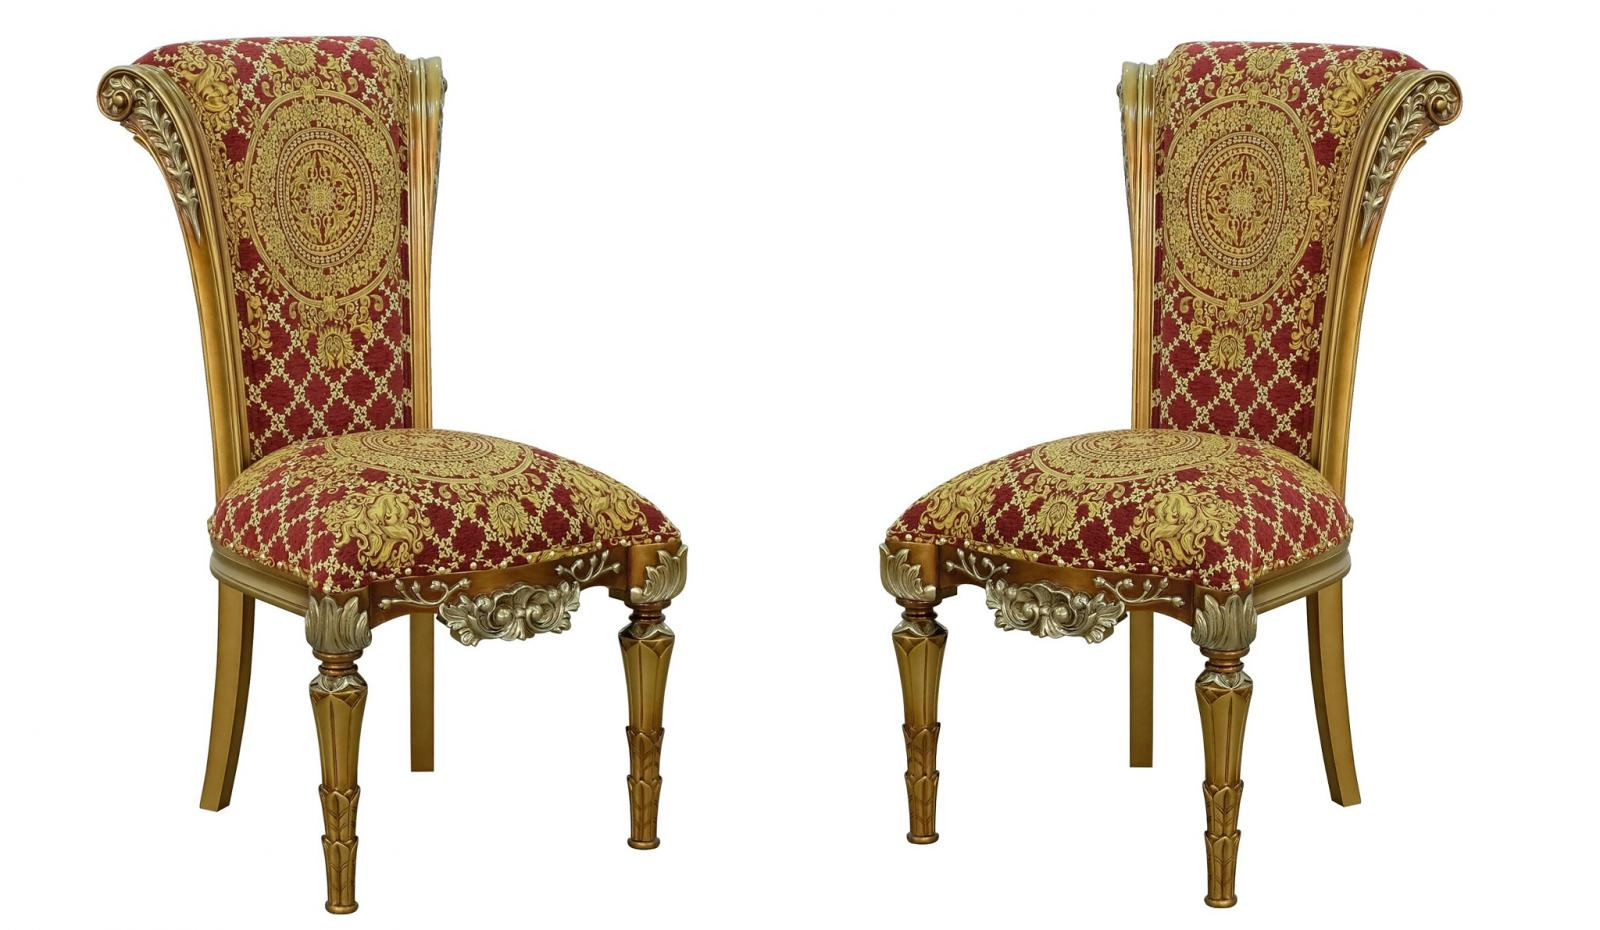 Classic, Traditional Bronze, Gold, Red Fabric and Wood, Solid Hardwood Dining Chair Set 2 pcs VALENTINA by European Furniture